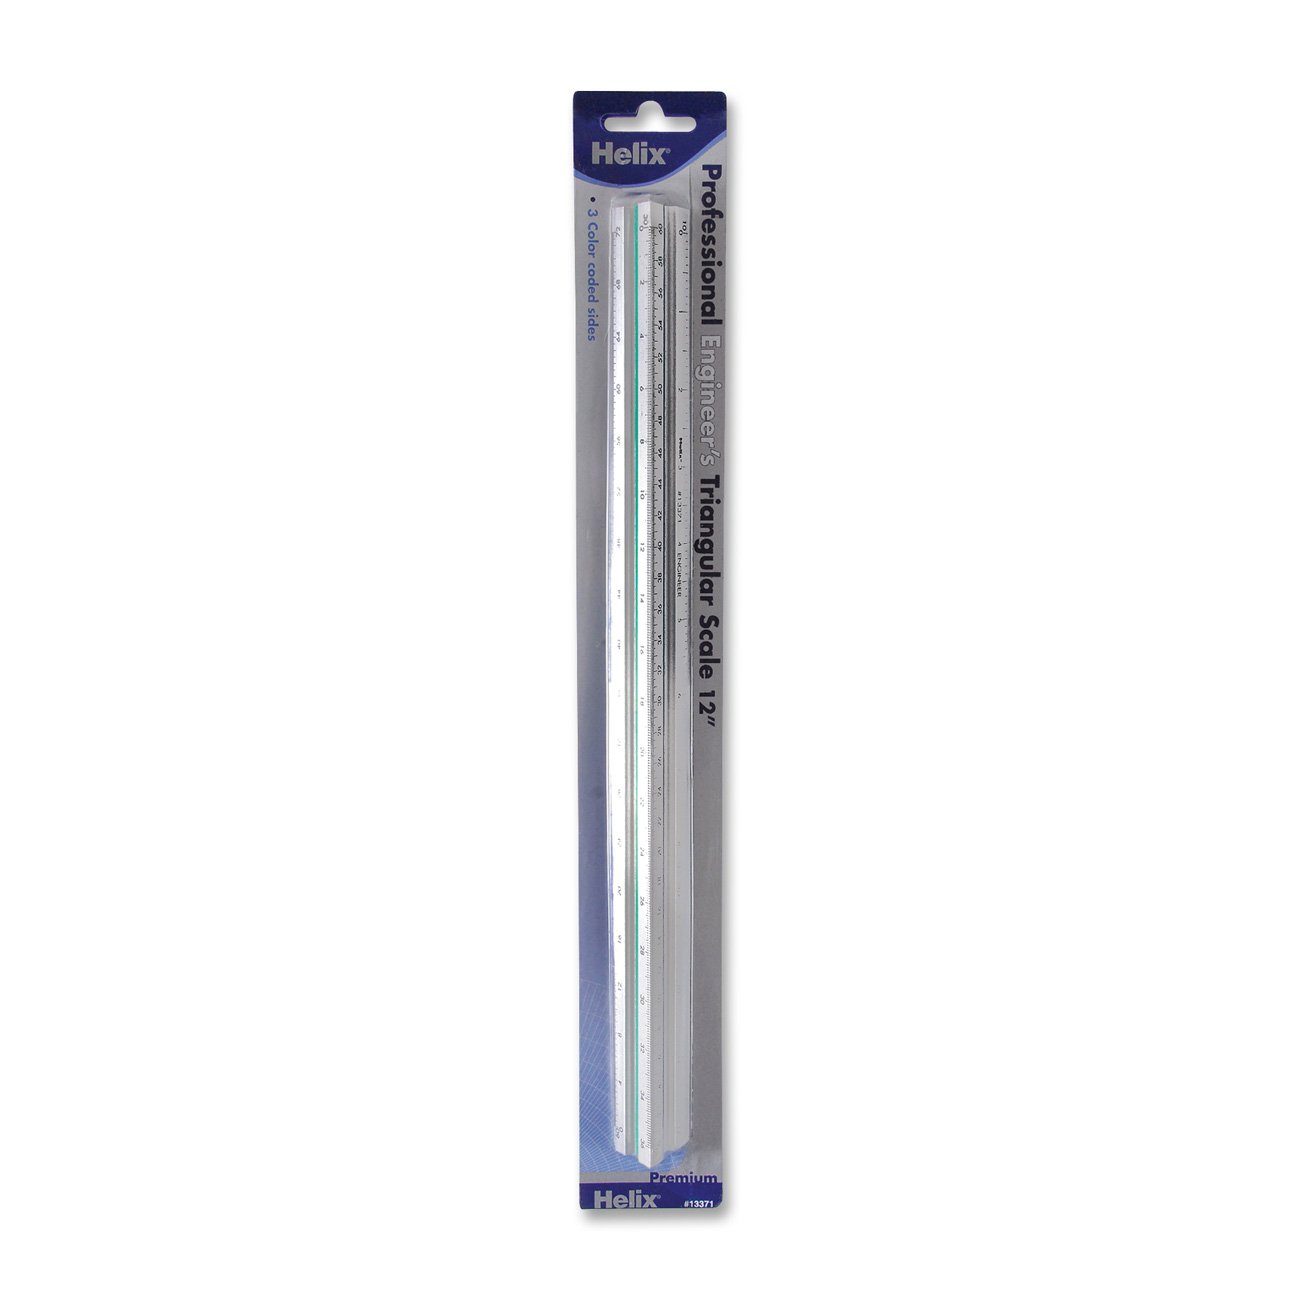 Helix Professional Engineer's Metal Triangular Scale 12 Inch / 30cm (13371)